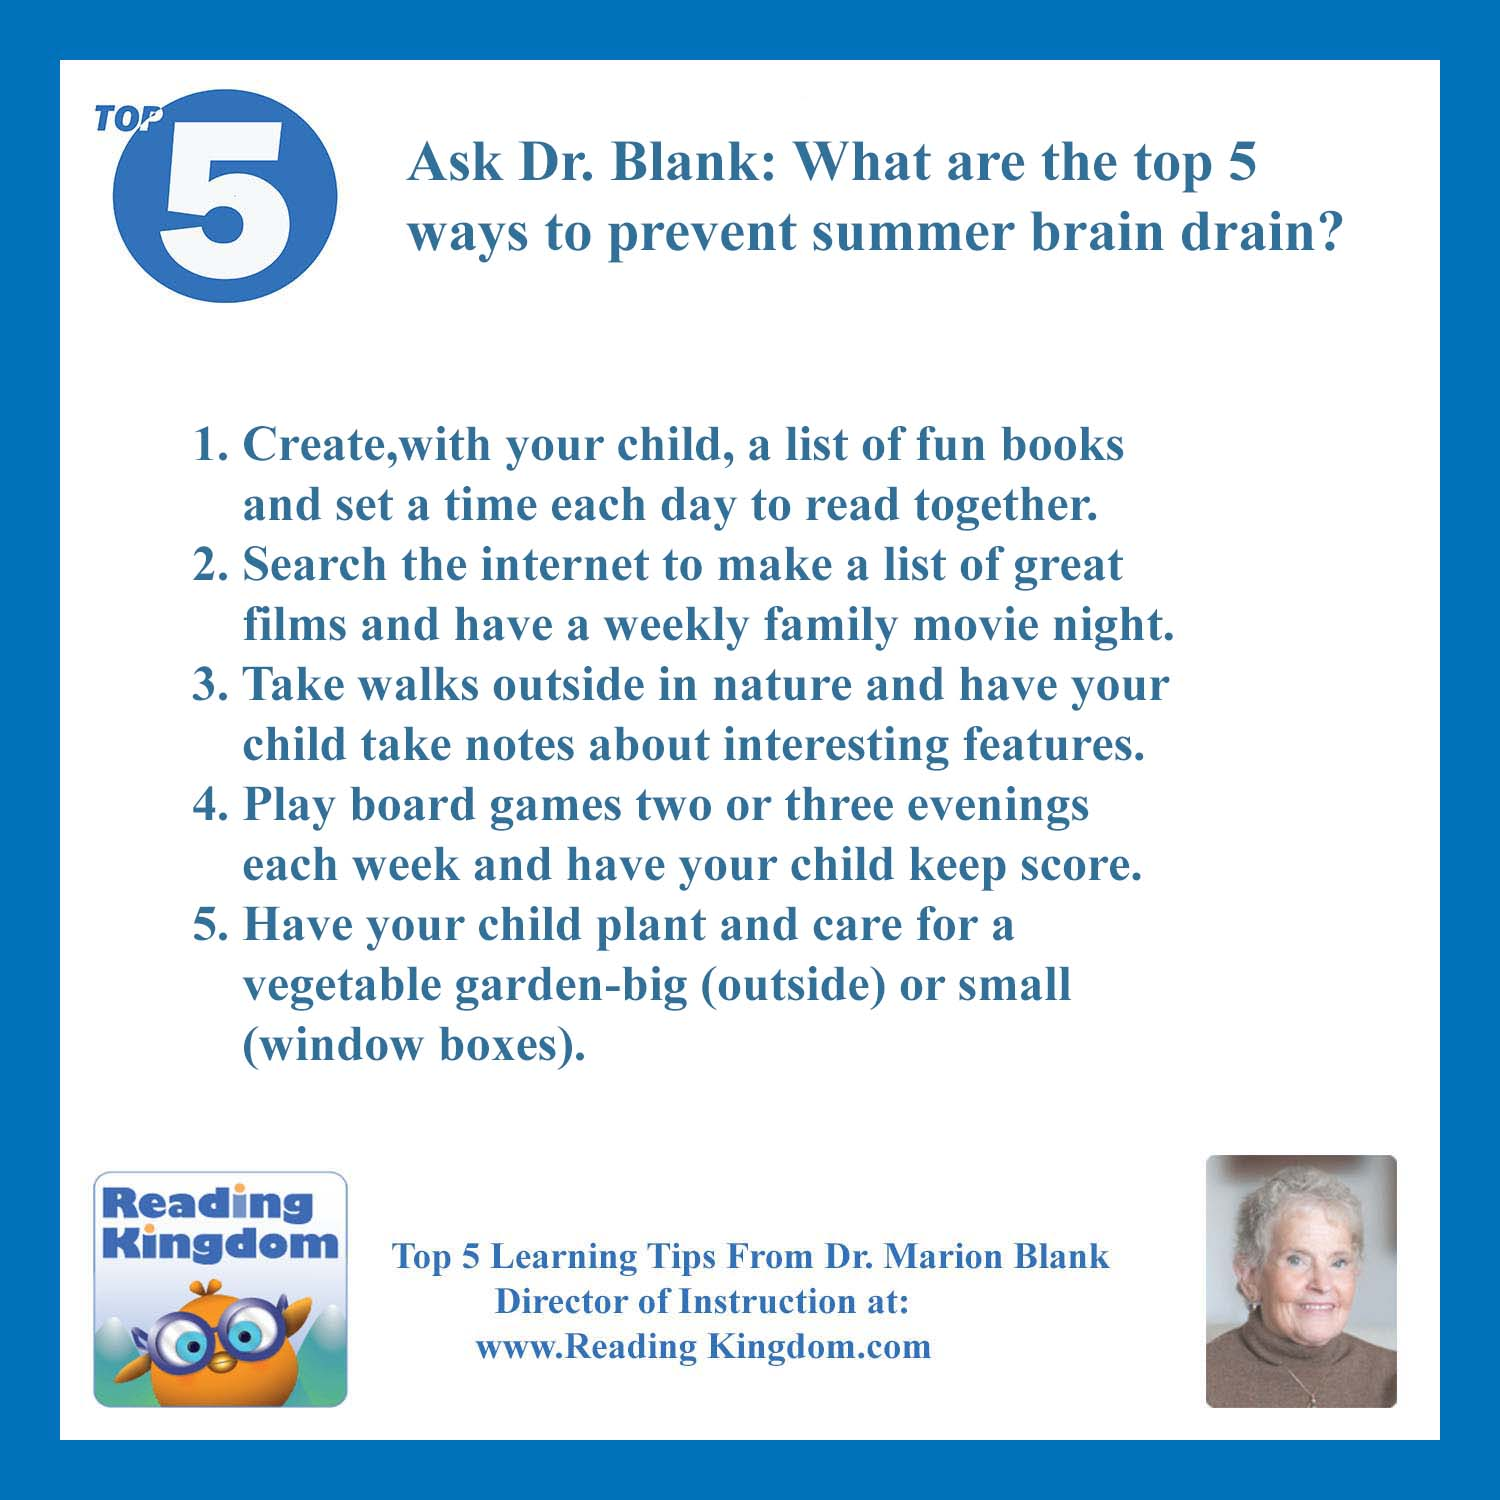 Brain drain and other tips for caring for children from the Middle Ages 69